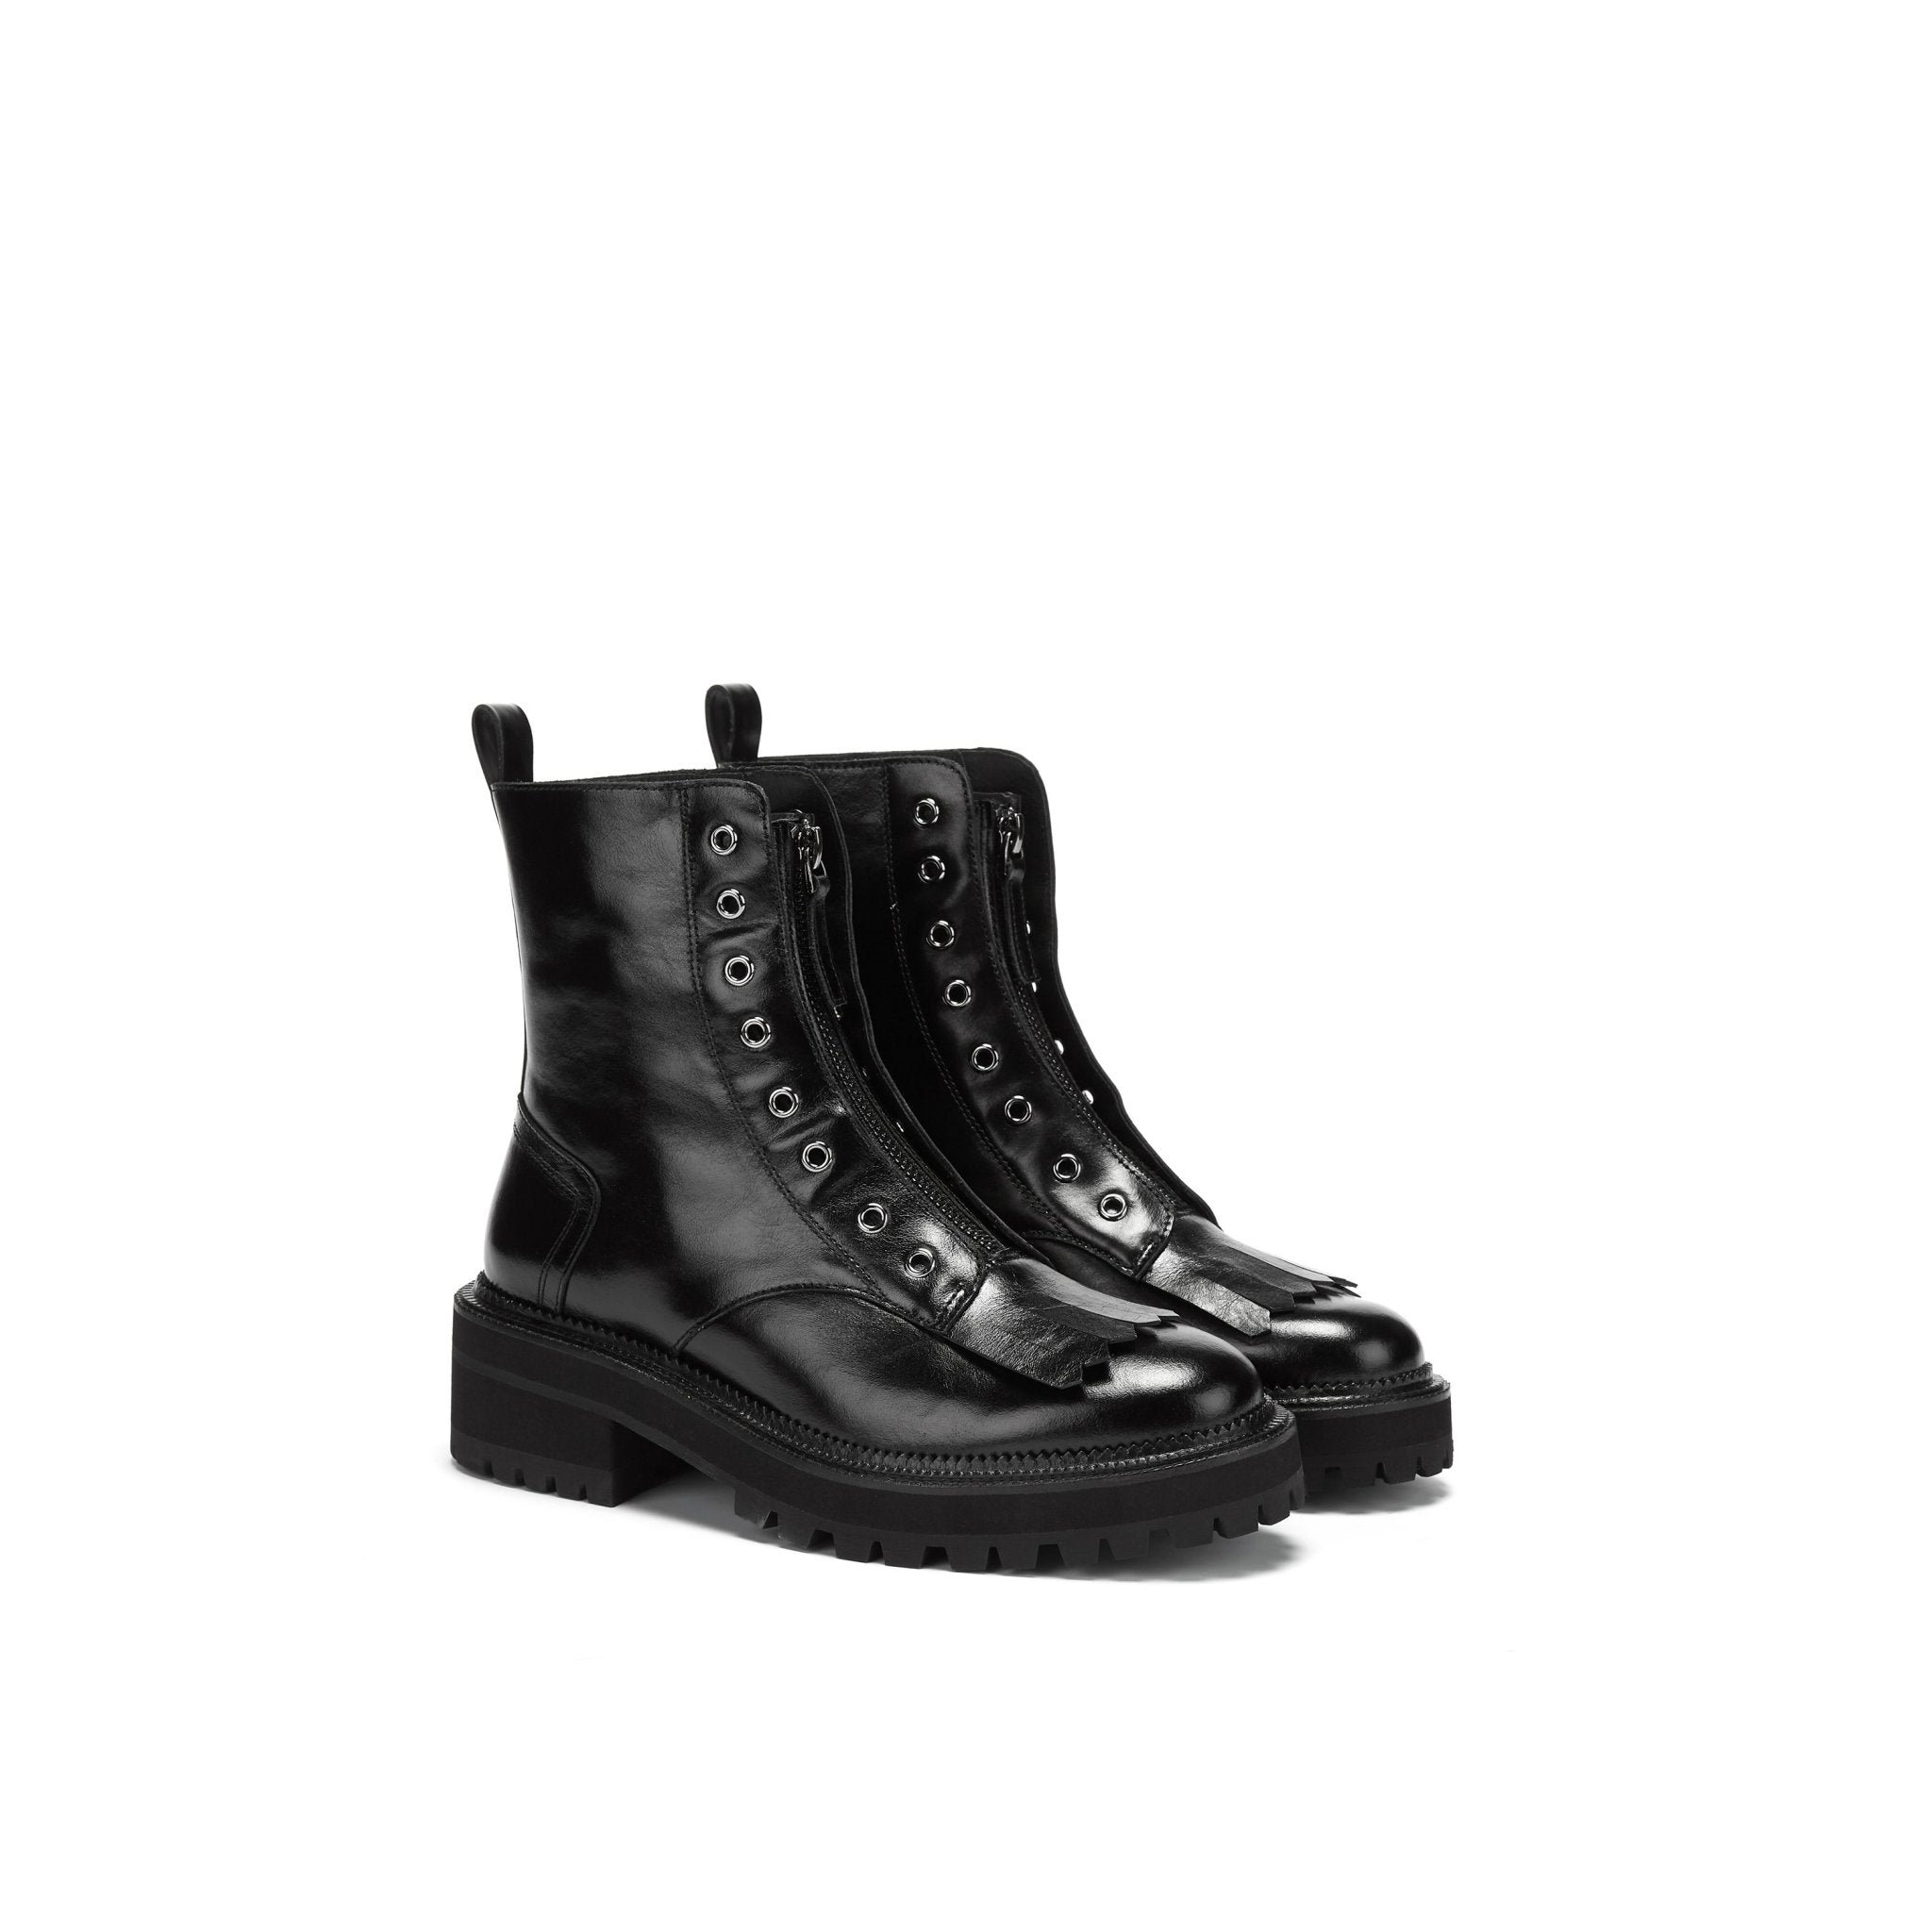 LOST IN ECHO Black Fringe Martin Boots | MADA IN CHINA